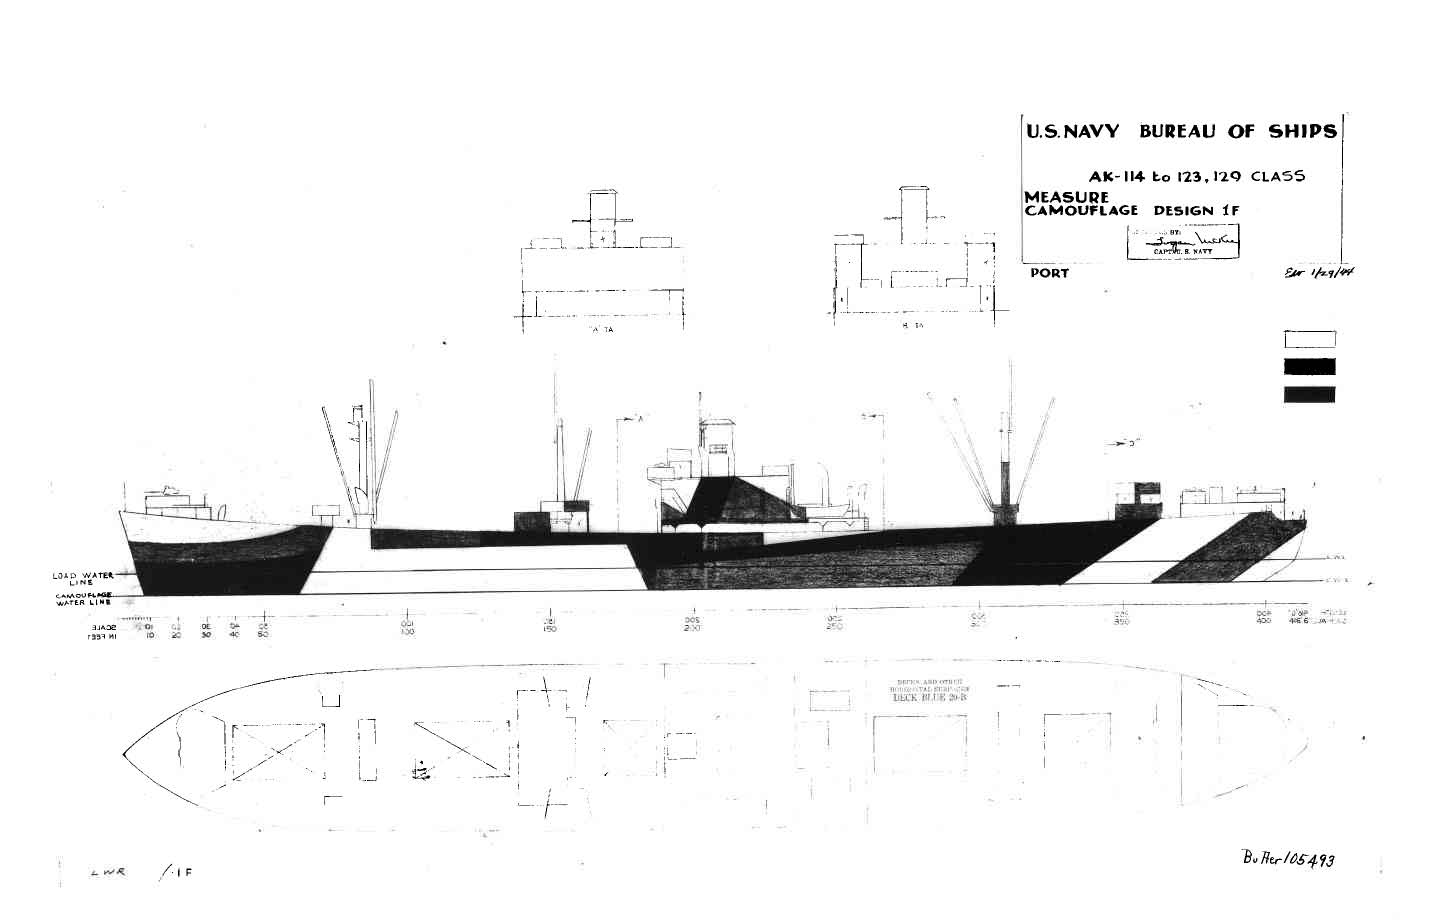 Ships Build Under The Merchant Marine Act Of